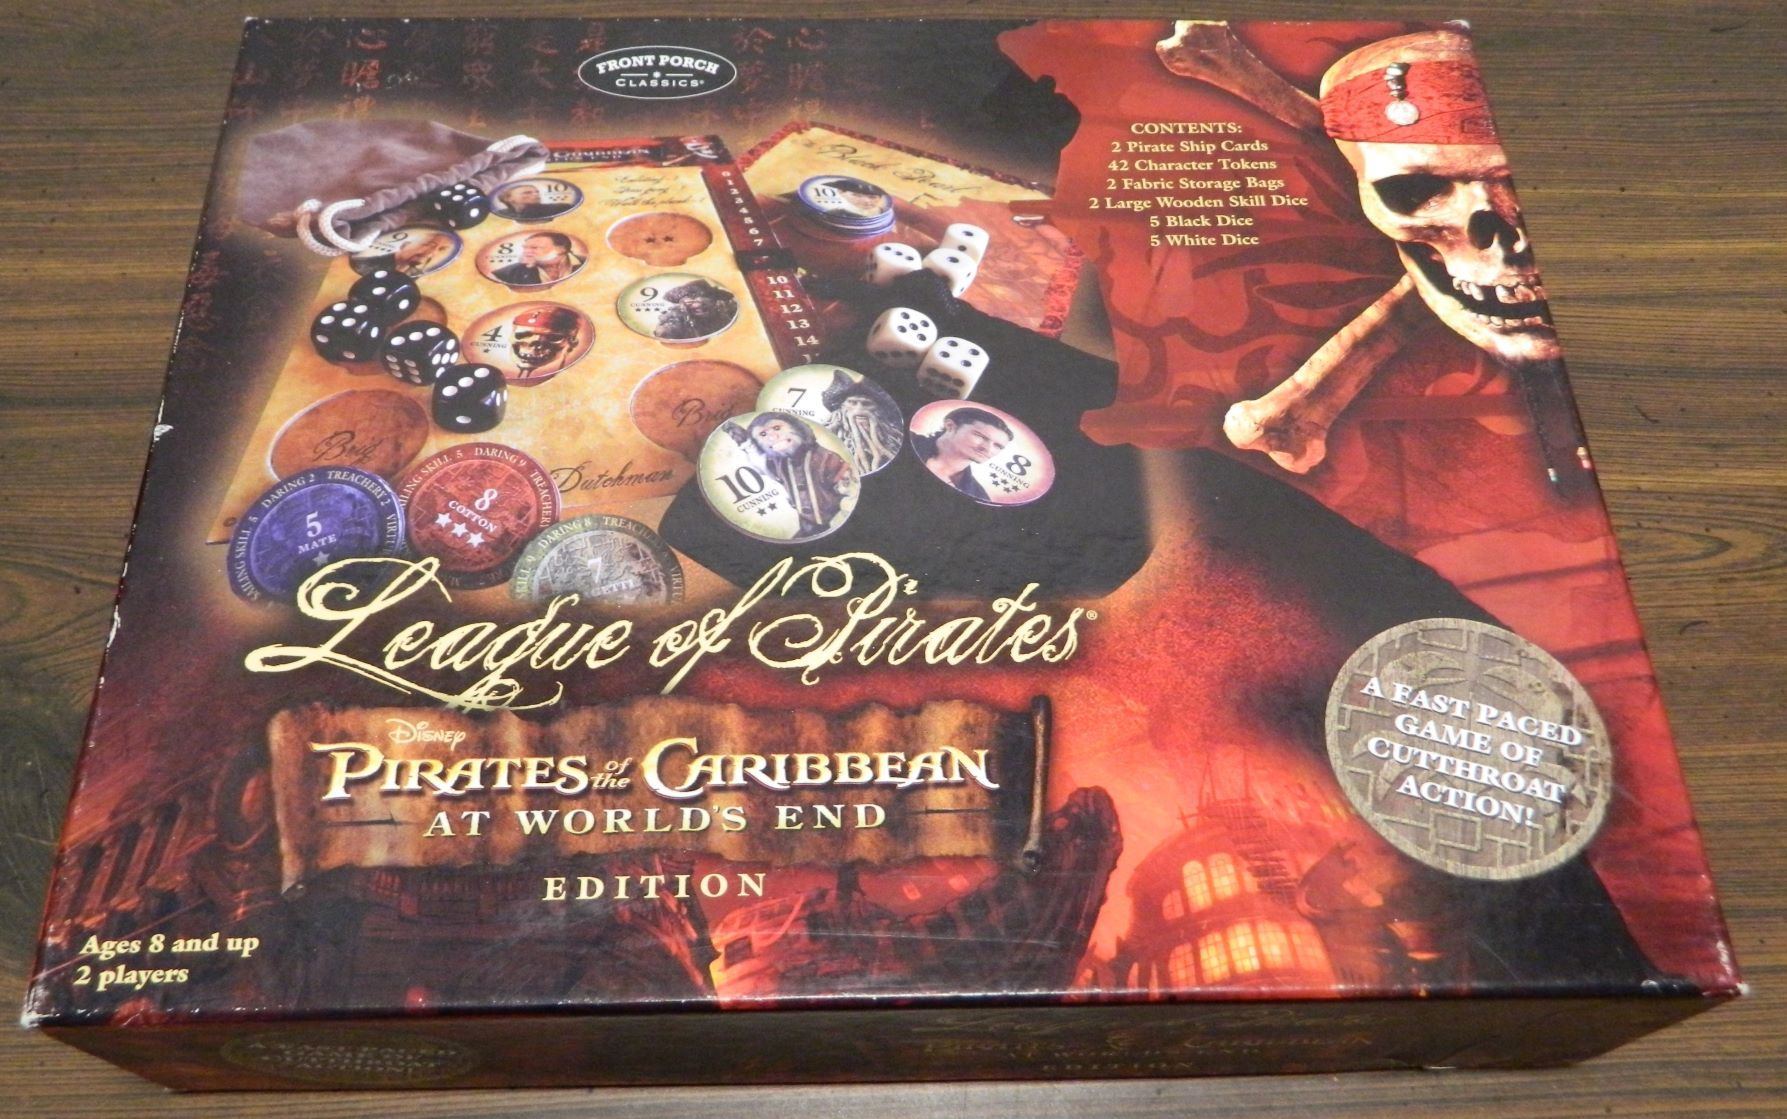 Box for League of Pirates